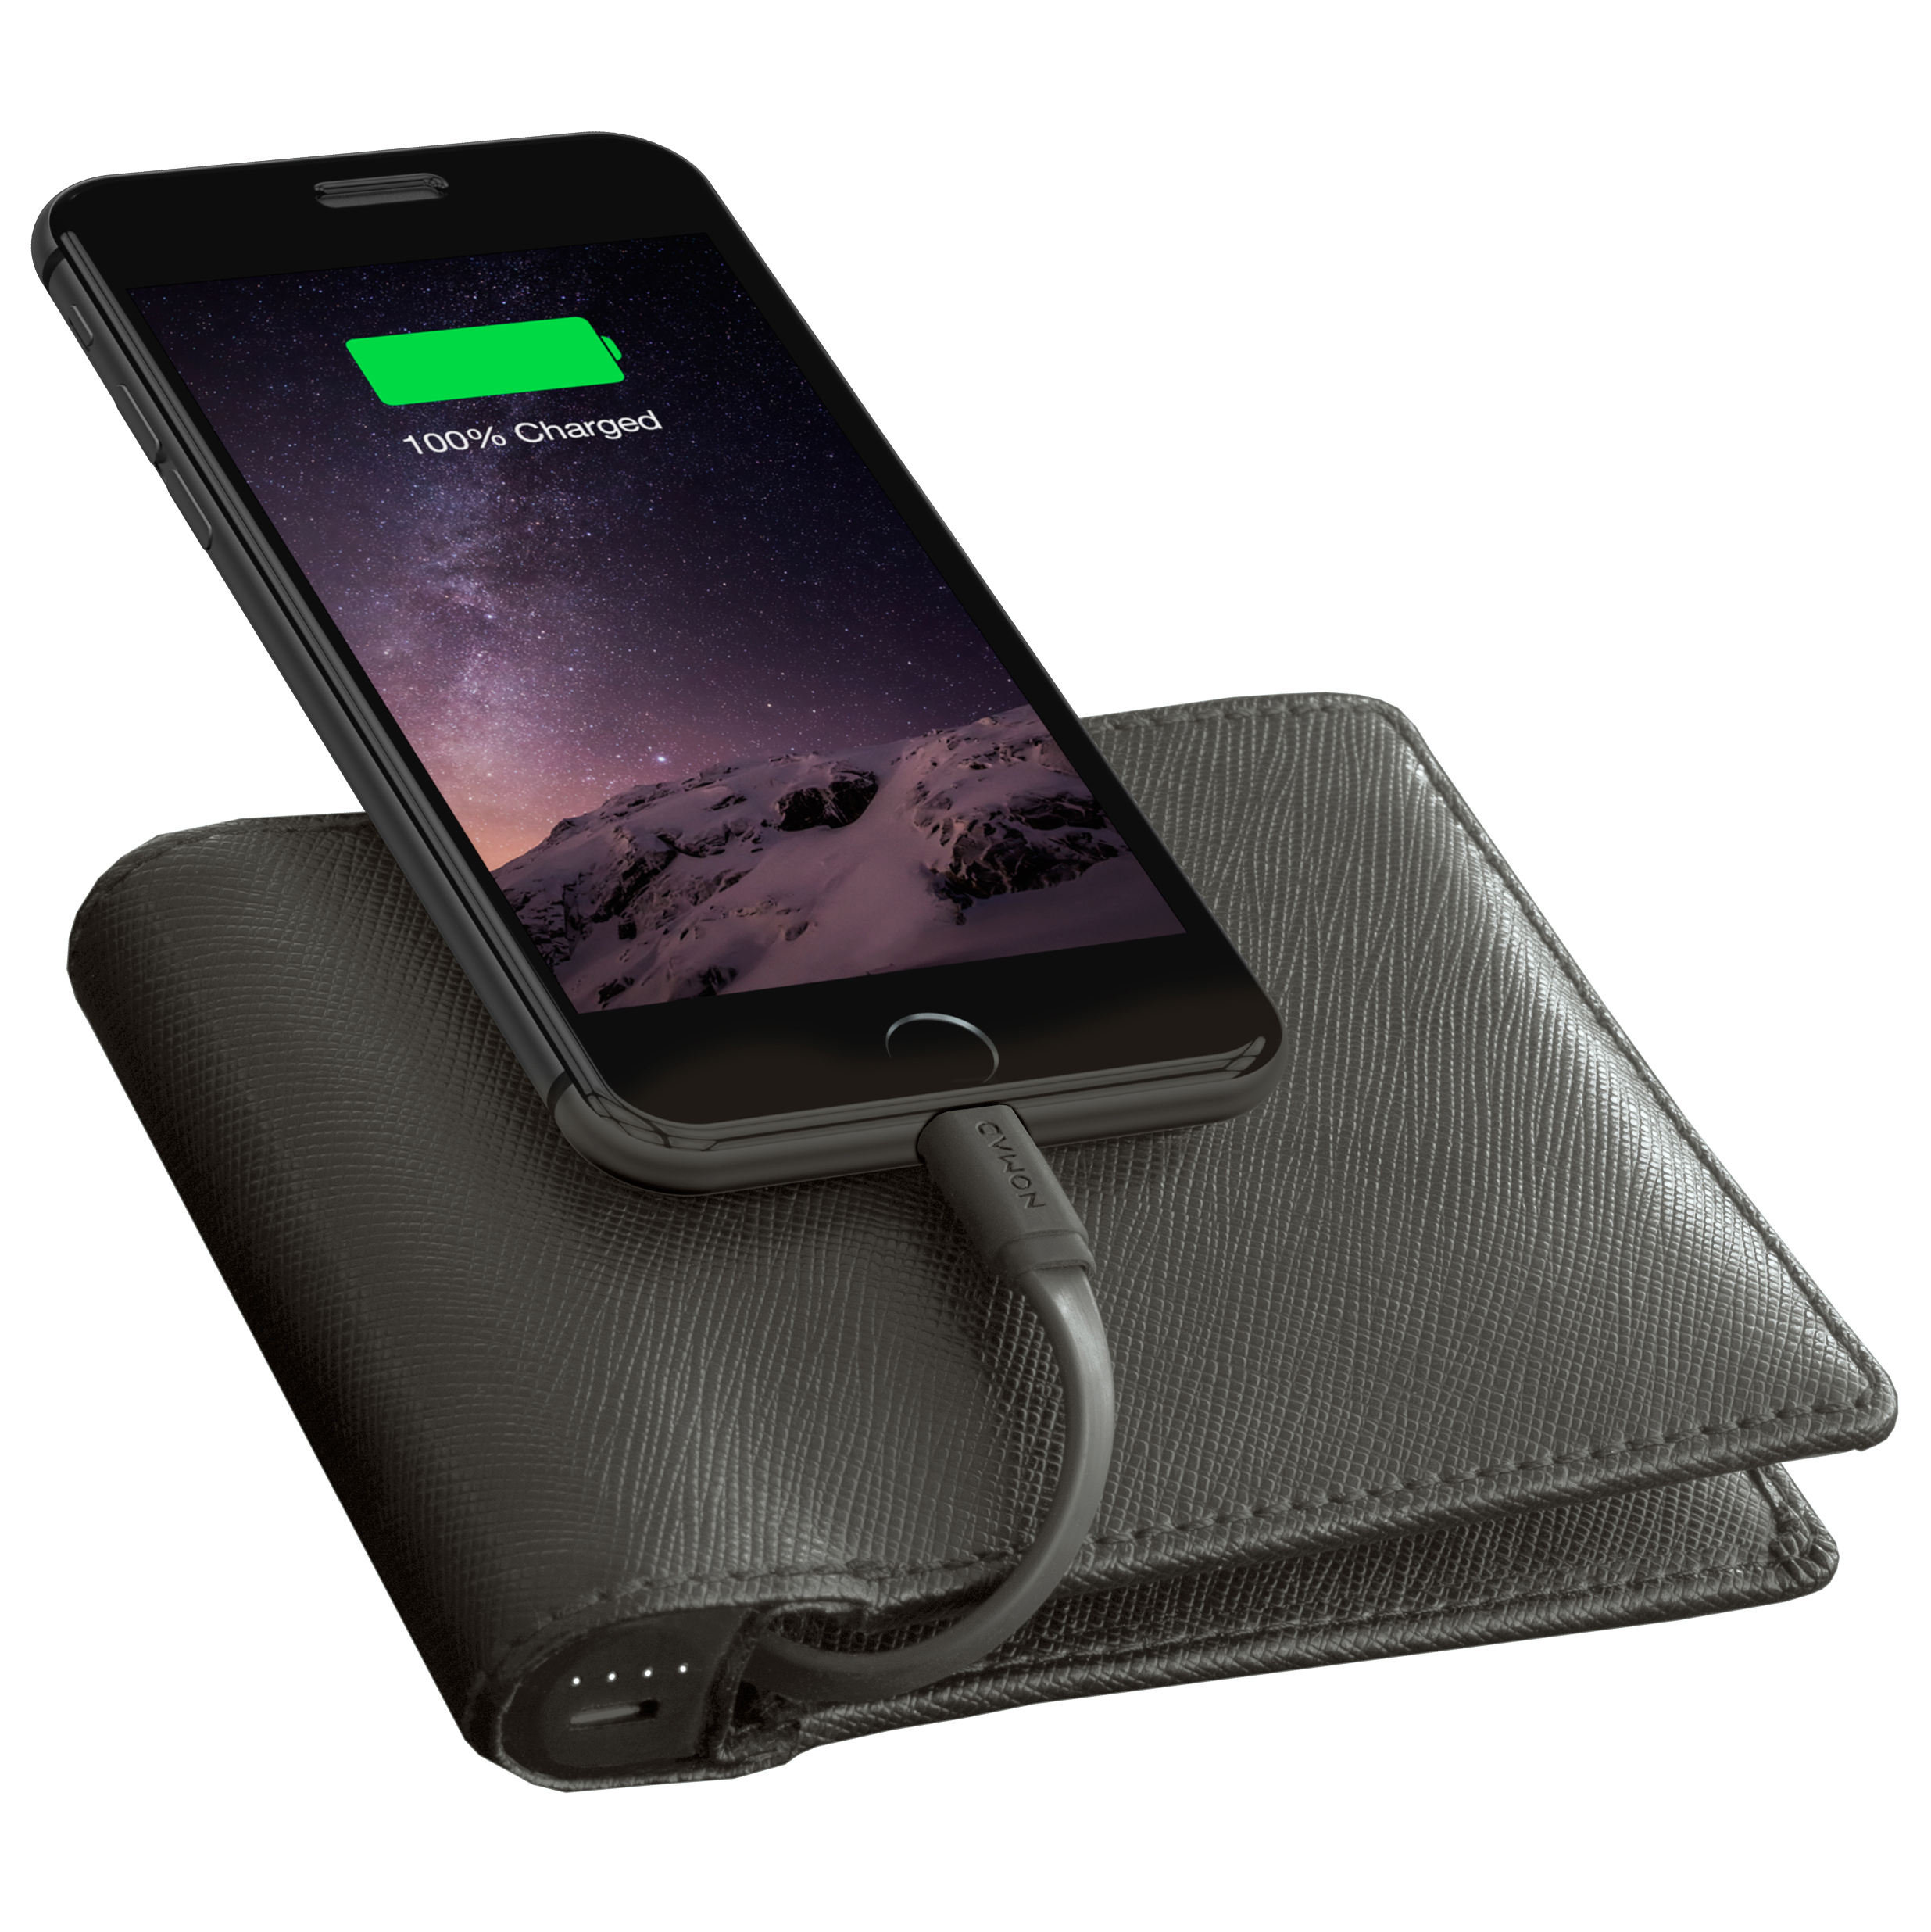 Review: Nomad's Wallet for iPhone packs a powerful punch with a built-in battery